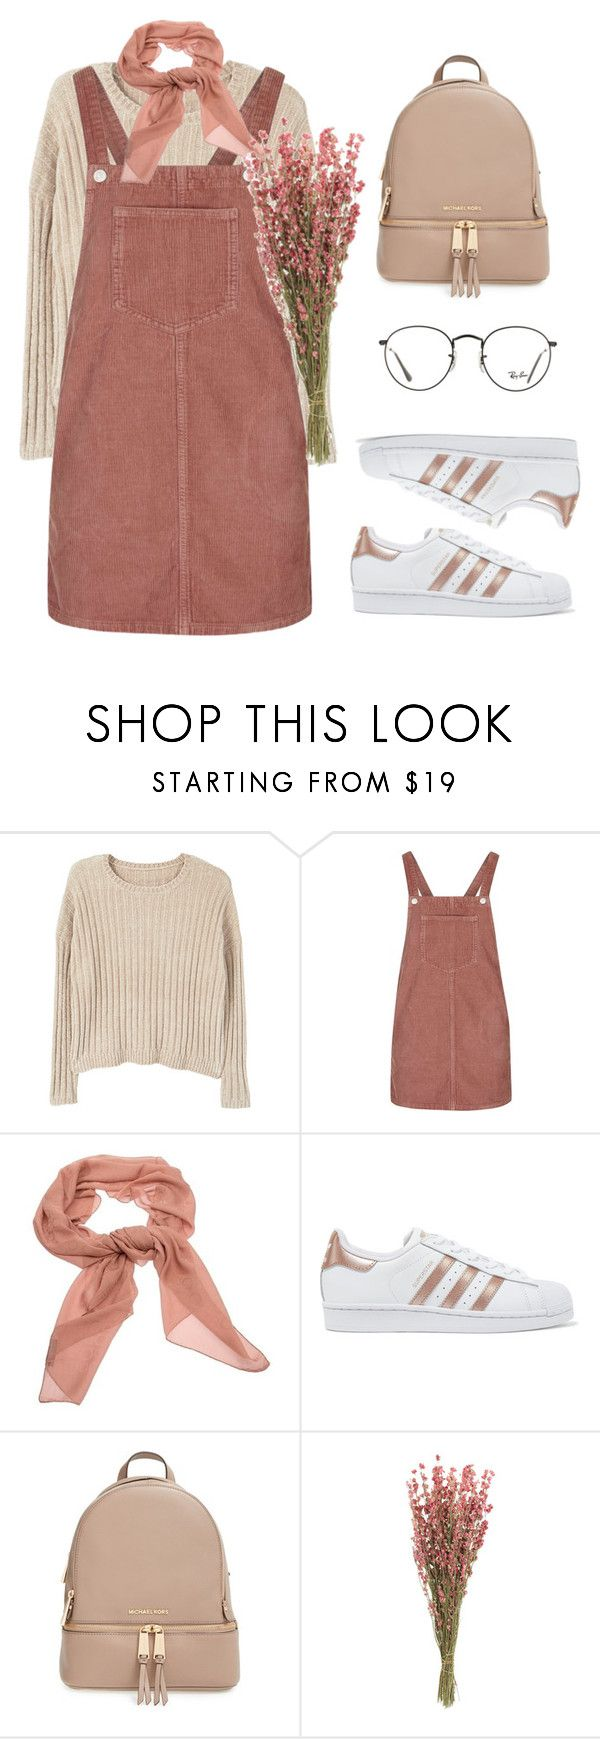 """""""10 ☼"""" by hey-nice-to-meet-you ❤ liked on Polyvore featuring MANGO, Topshop, Salvatore Ferragamo, adidas Originals, MICHAEL Michael Kors and Ray-Ban"""